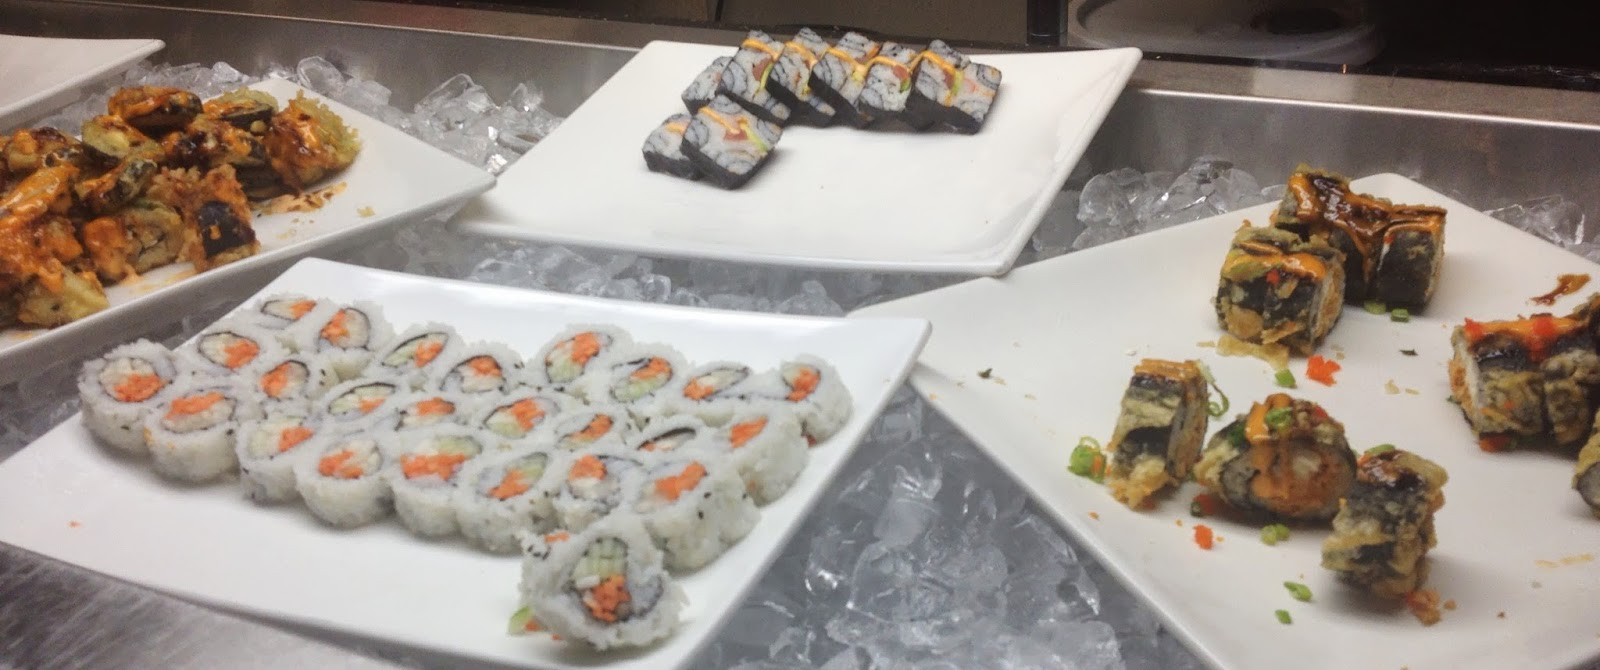 Restaurant review new china buffet newport ky the for Aoi japanese cuisine newport ky